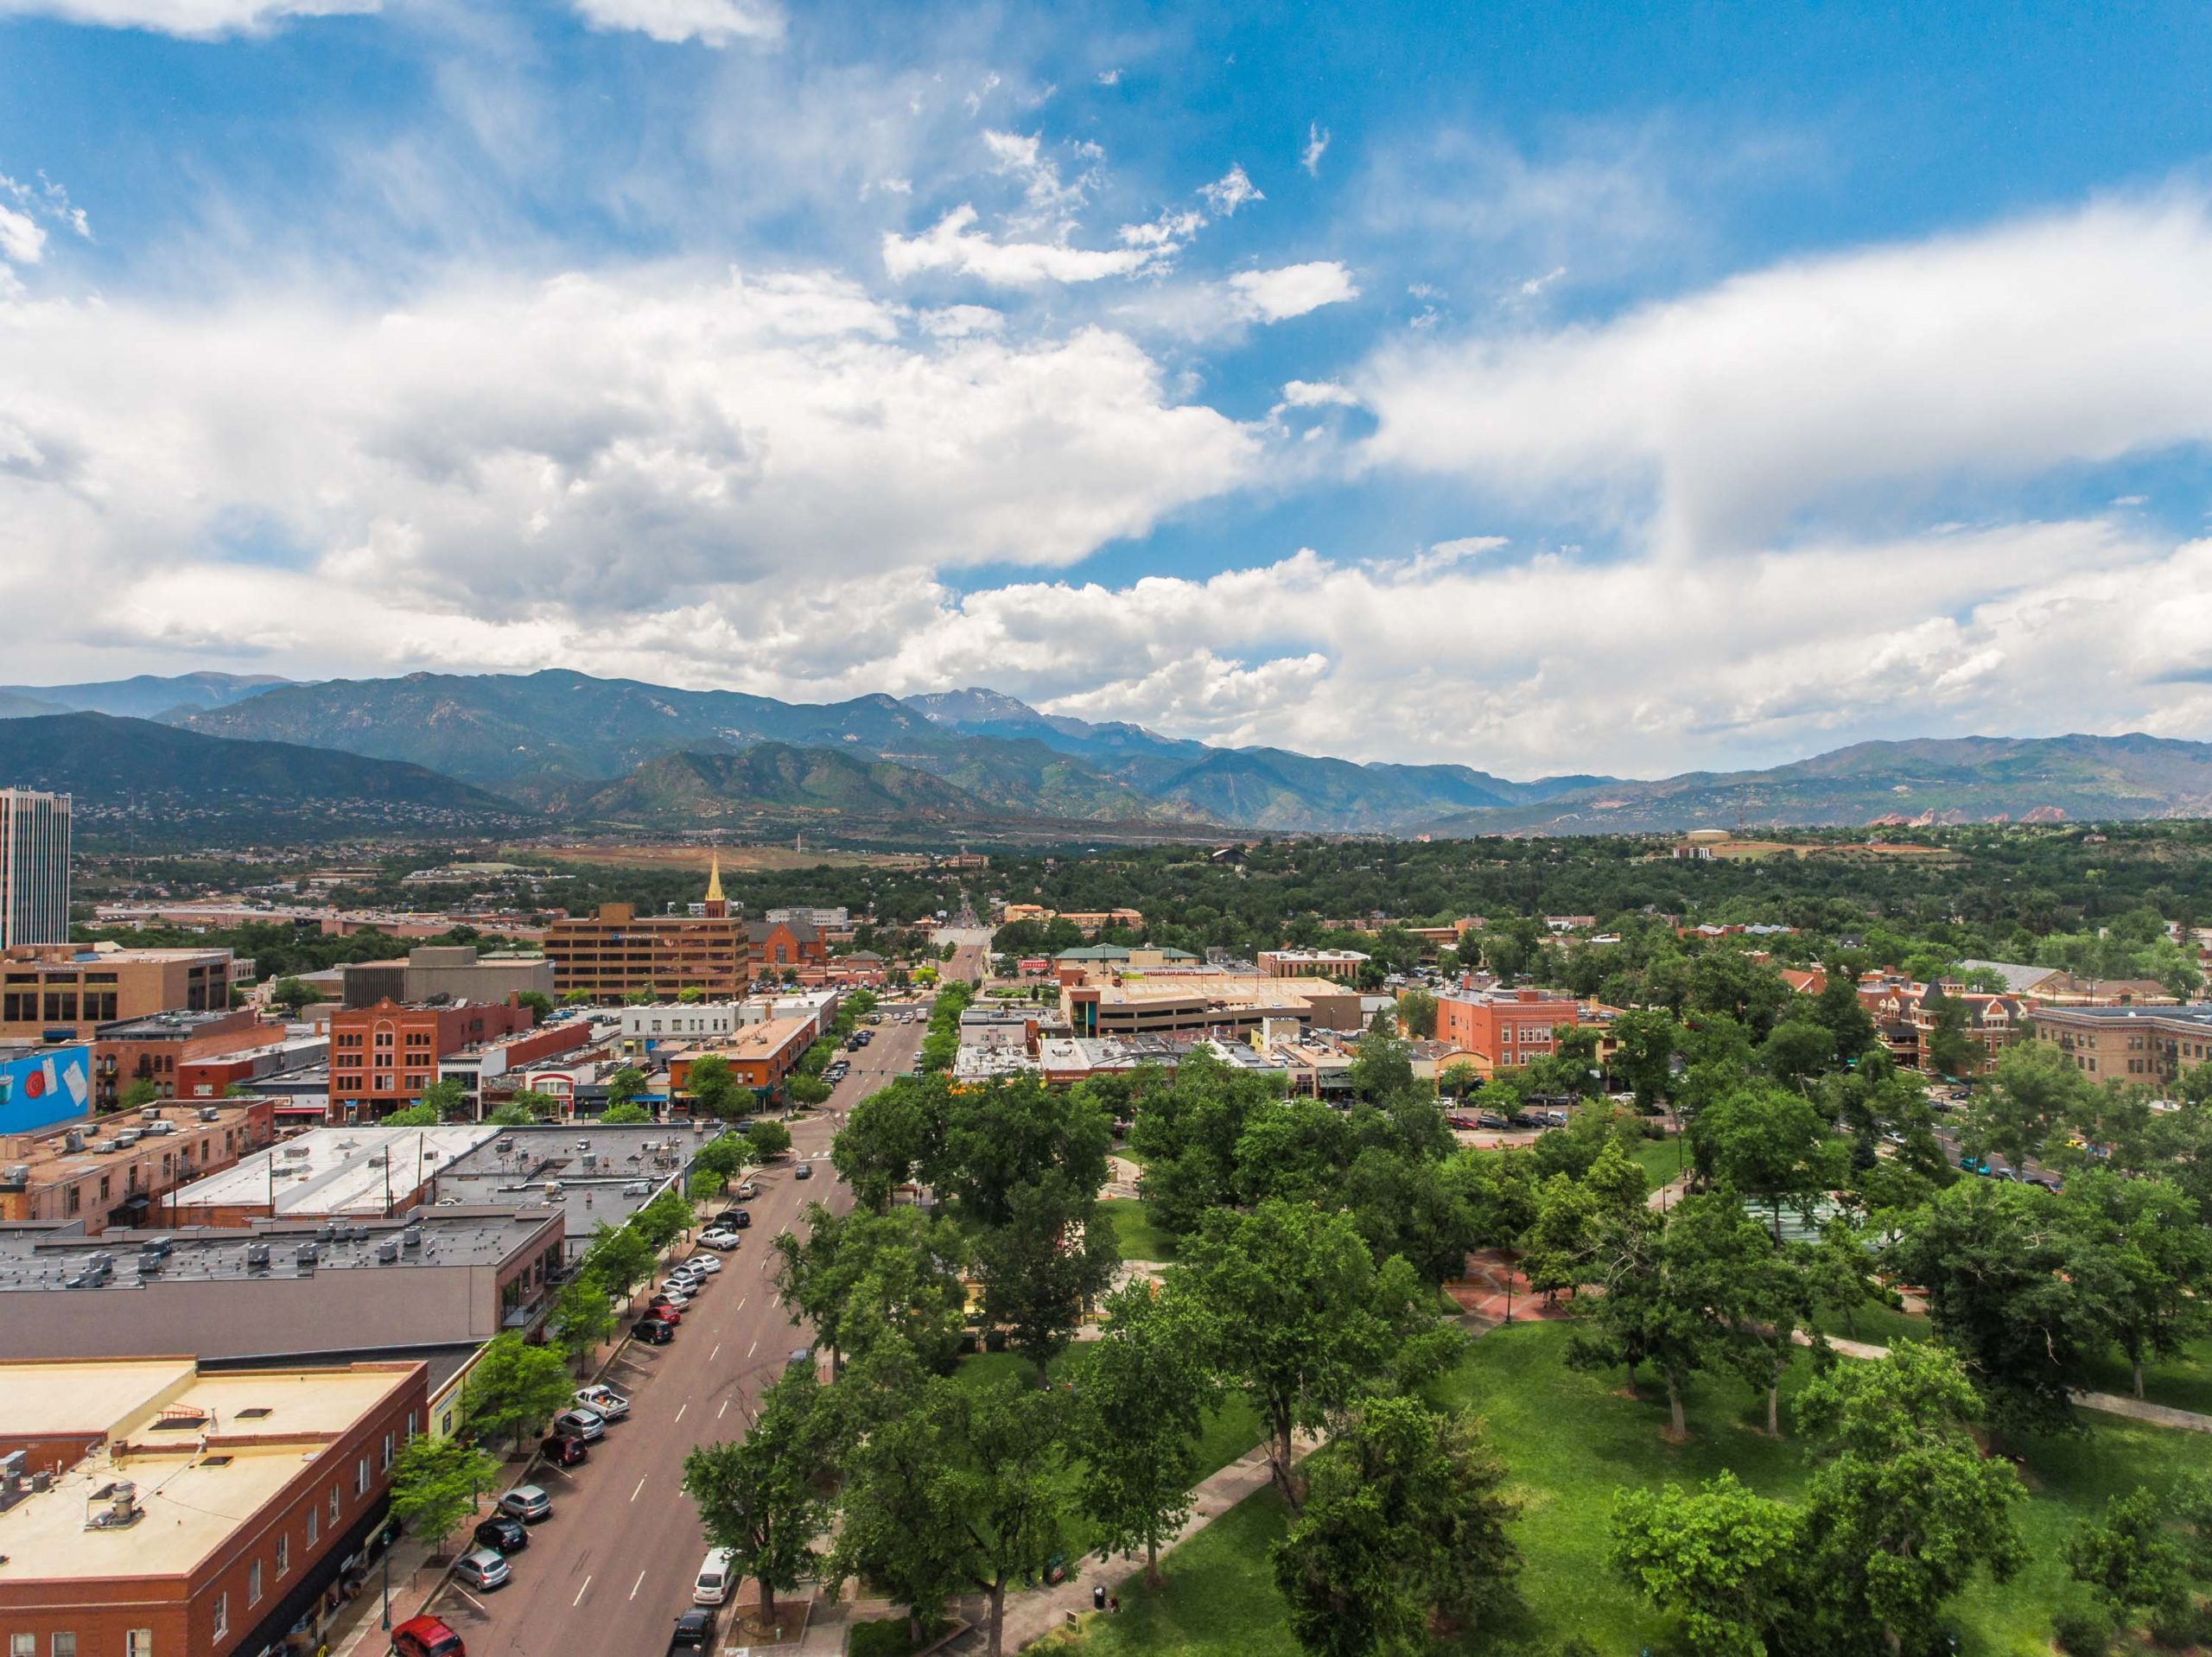 Downtown Colorado Springs in 2019.